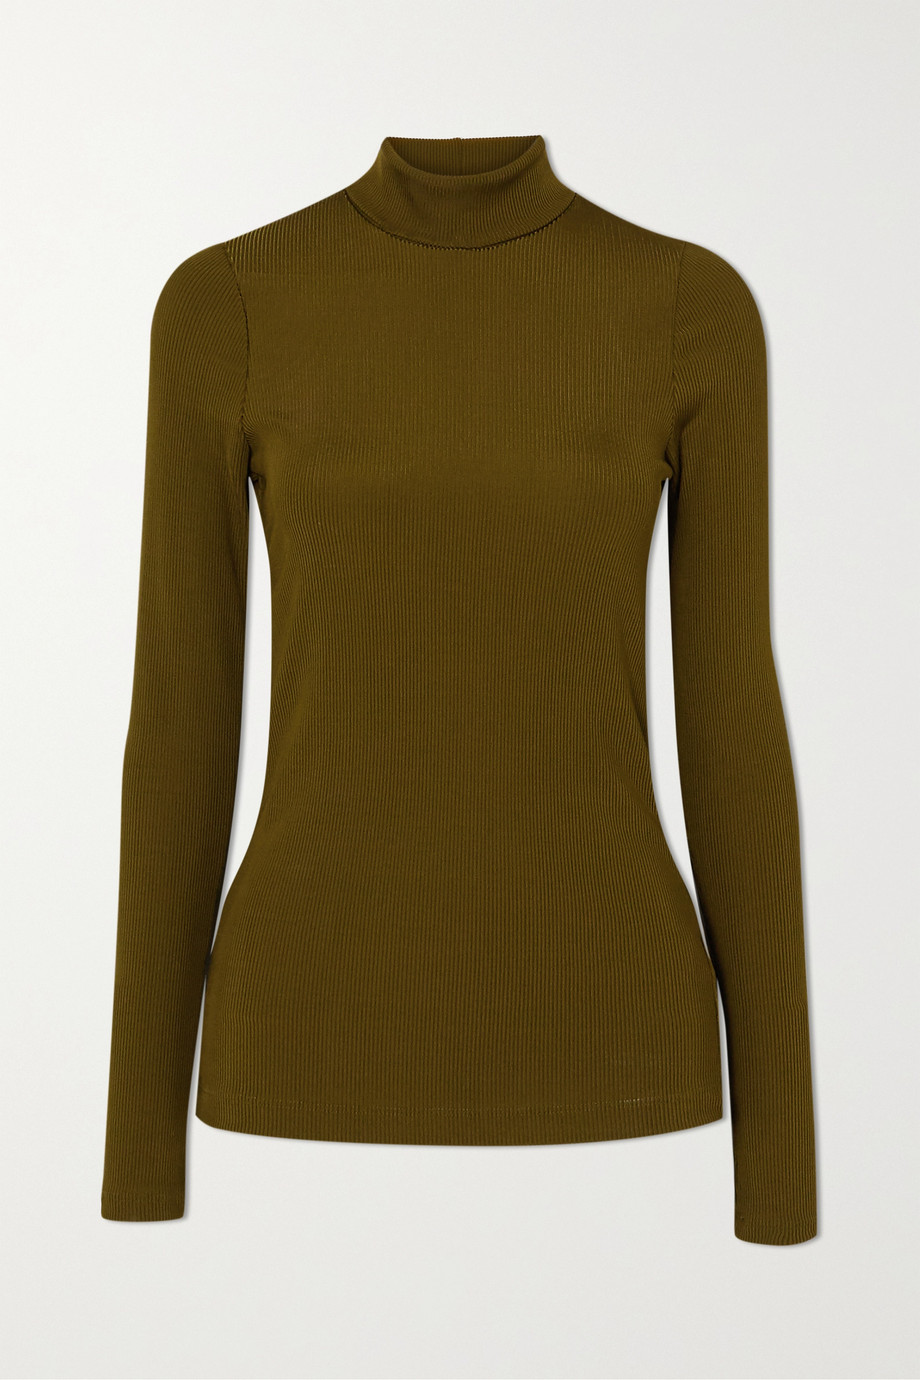 GOLDSIGN + NET SUSTAIN The Rib knitted turtleneck top